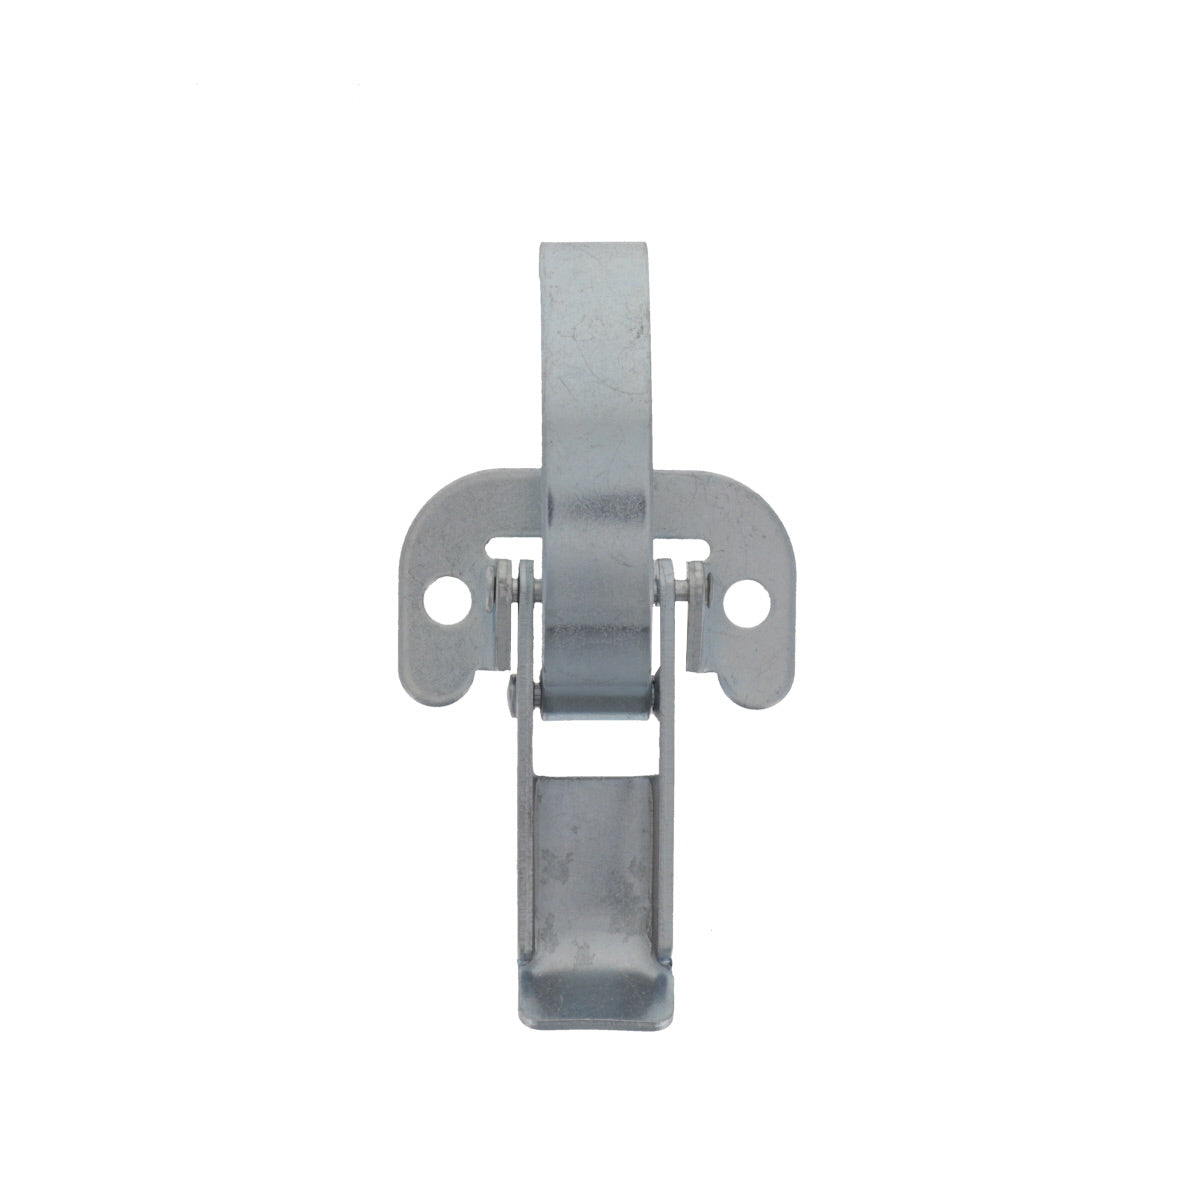 Lever Operated Drawlatch (with flat mounting plate), Front View